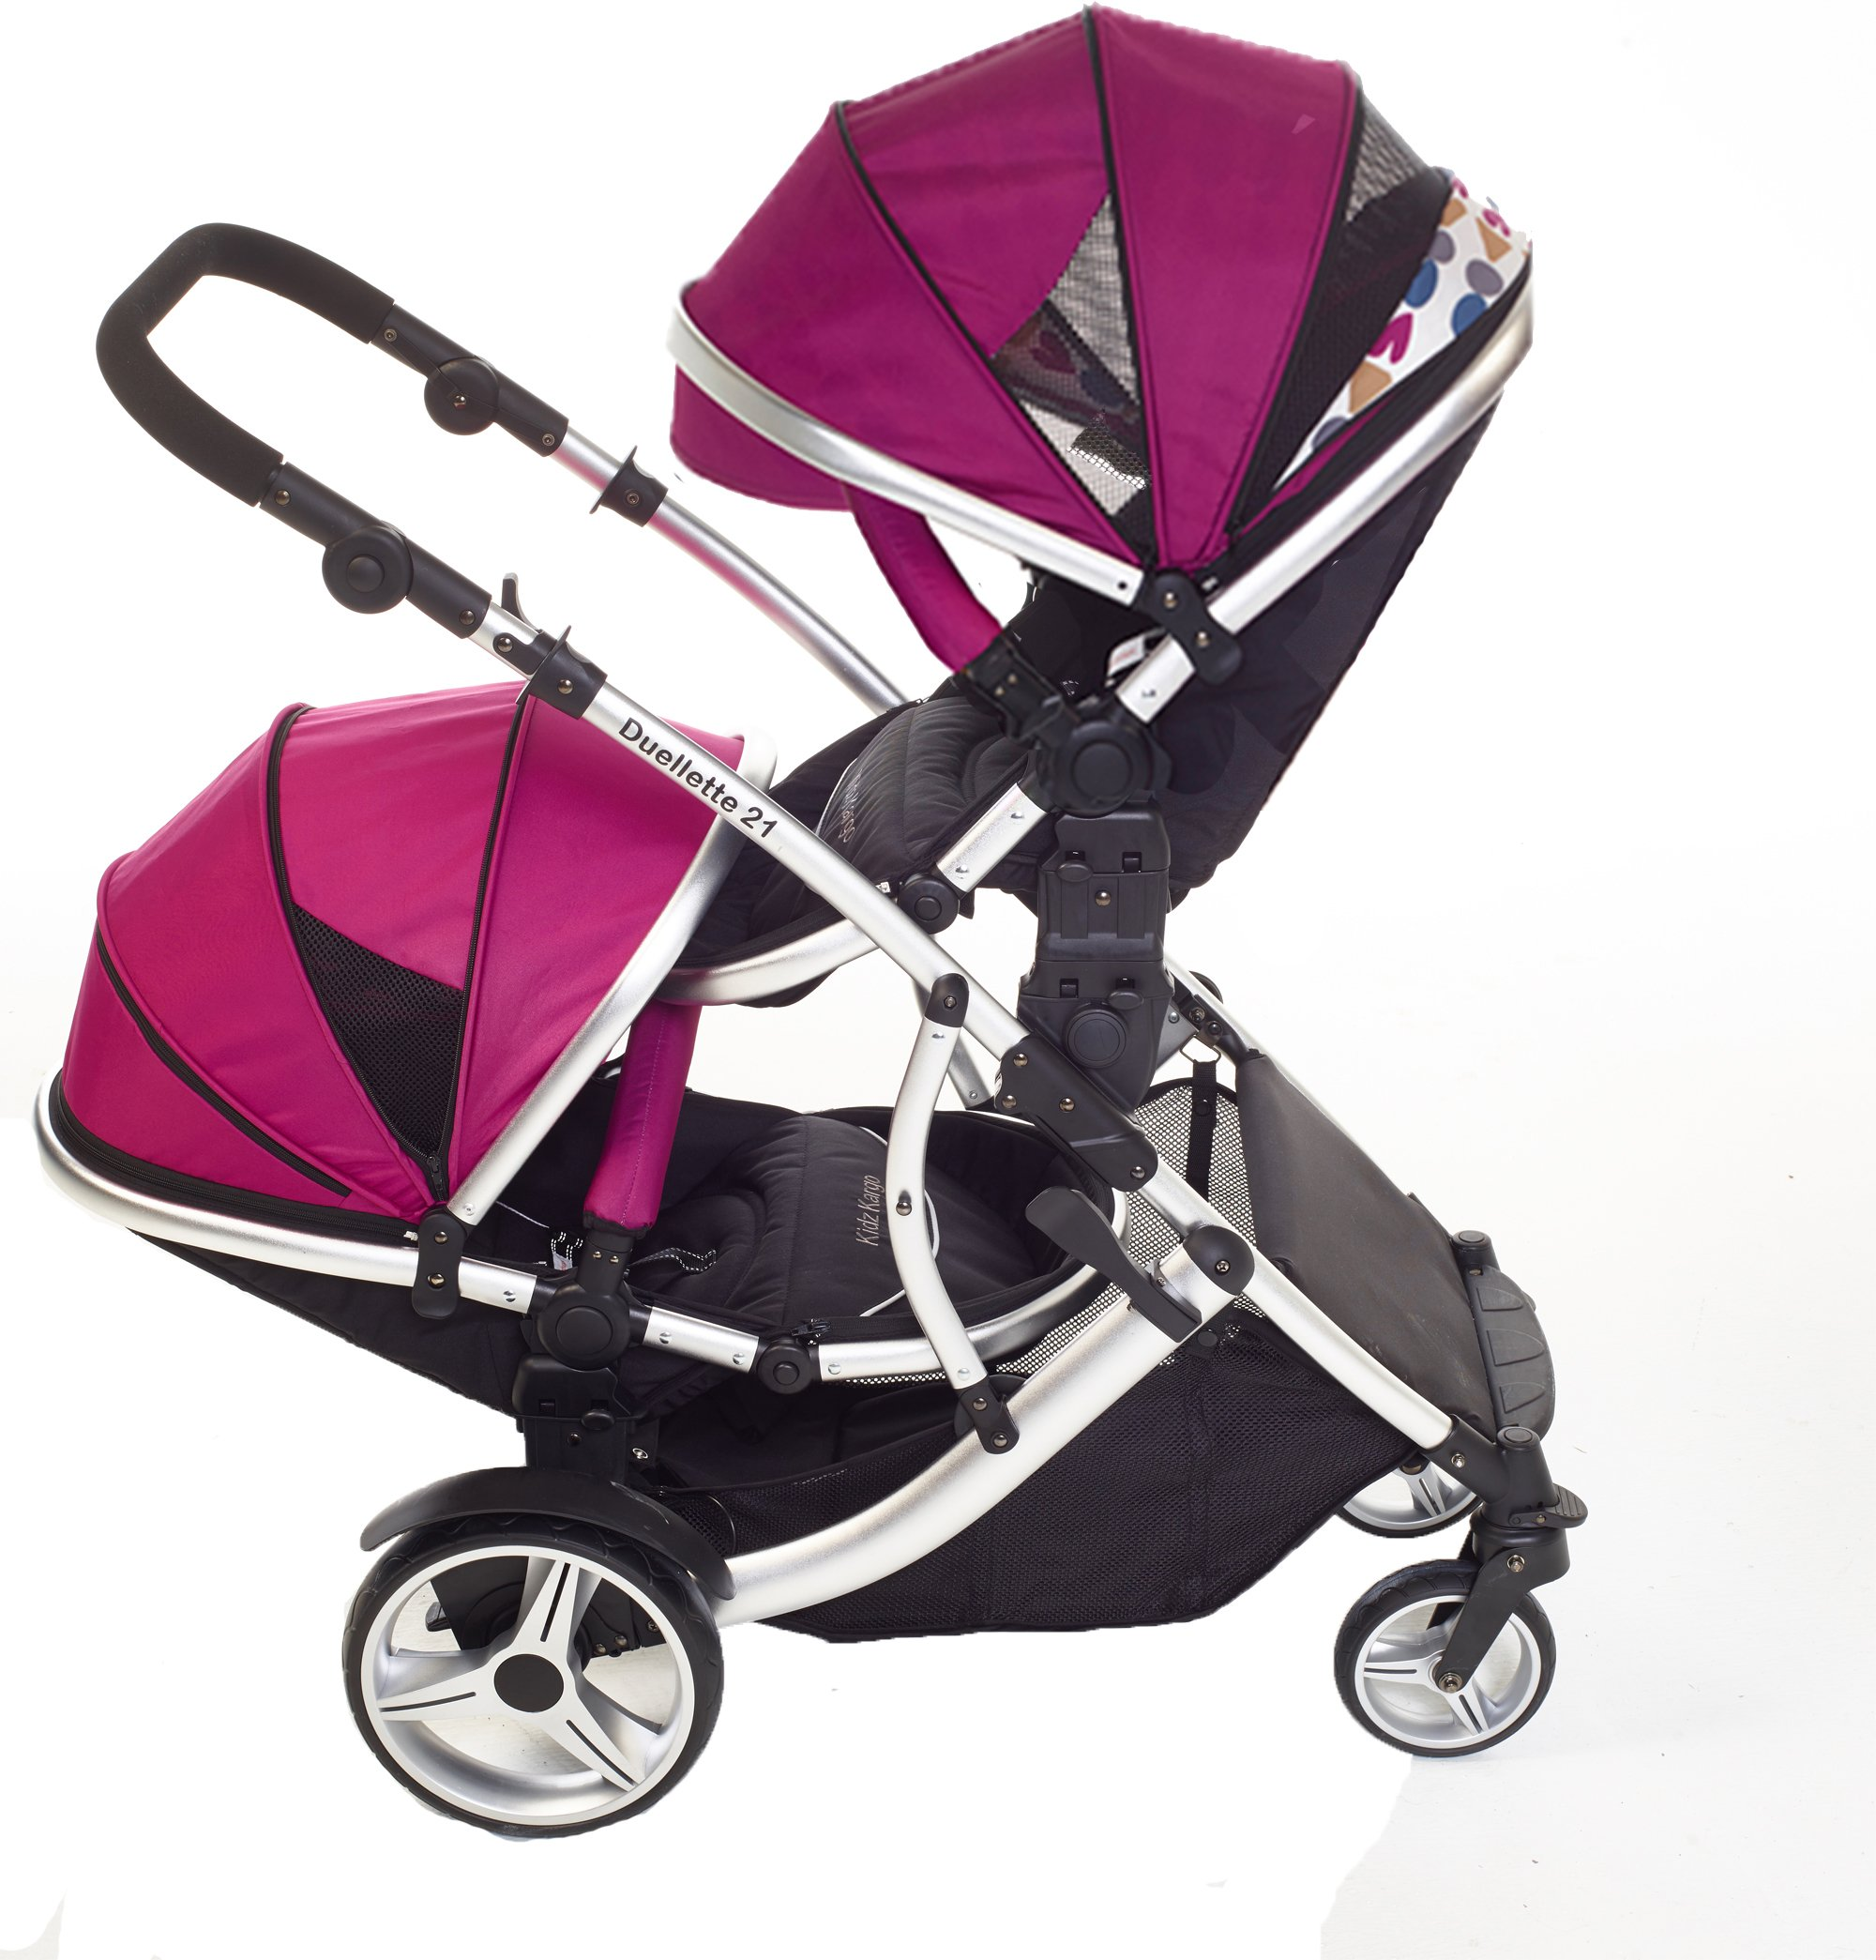 Kids Kargo Double Twin Tandem Pushchair. Duellette Combi Suitable from birth, Carrycot converts to toddler seat unit. Stroller by Kids Kargo (Dooglebug Raspberry)  Versatile. Suitable for Newborn Twins Compatible with car seats; Kidz Kargo, Britax Baby safe or Maxi Cosi adaptors. carrycots have mattress and soft lining, which zip off. Remove lining and lid, when baby grows out of carrycot mode, converts to seat unit 7